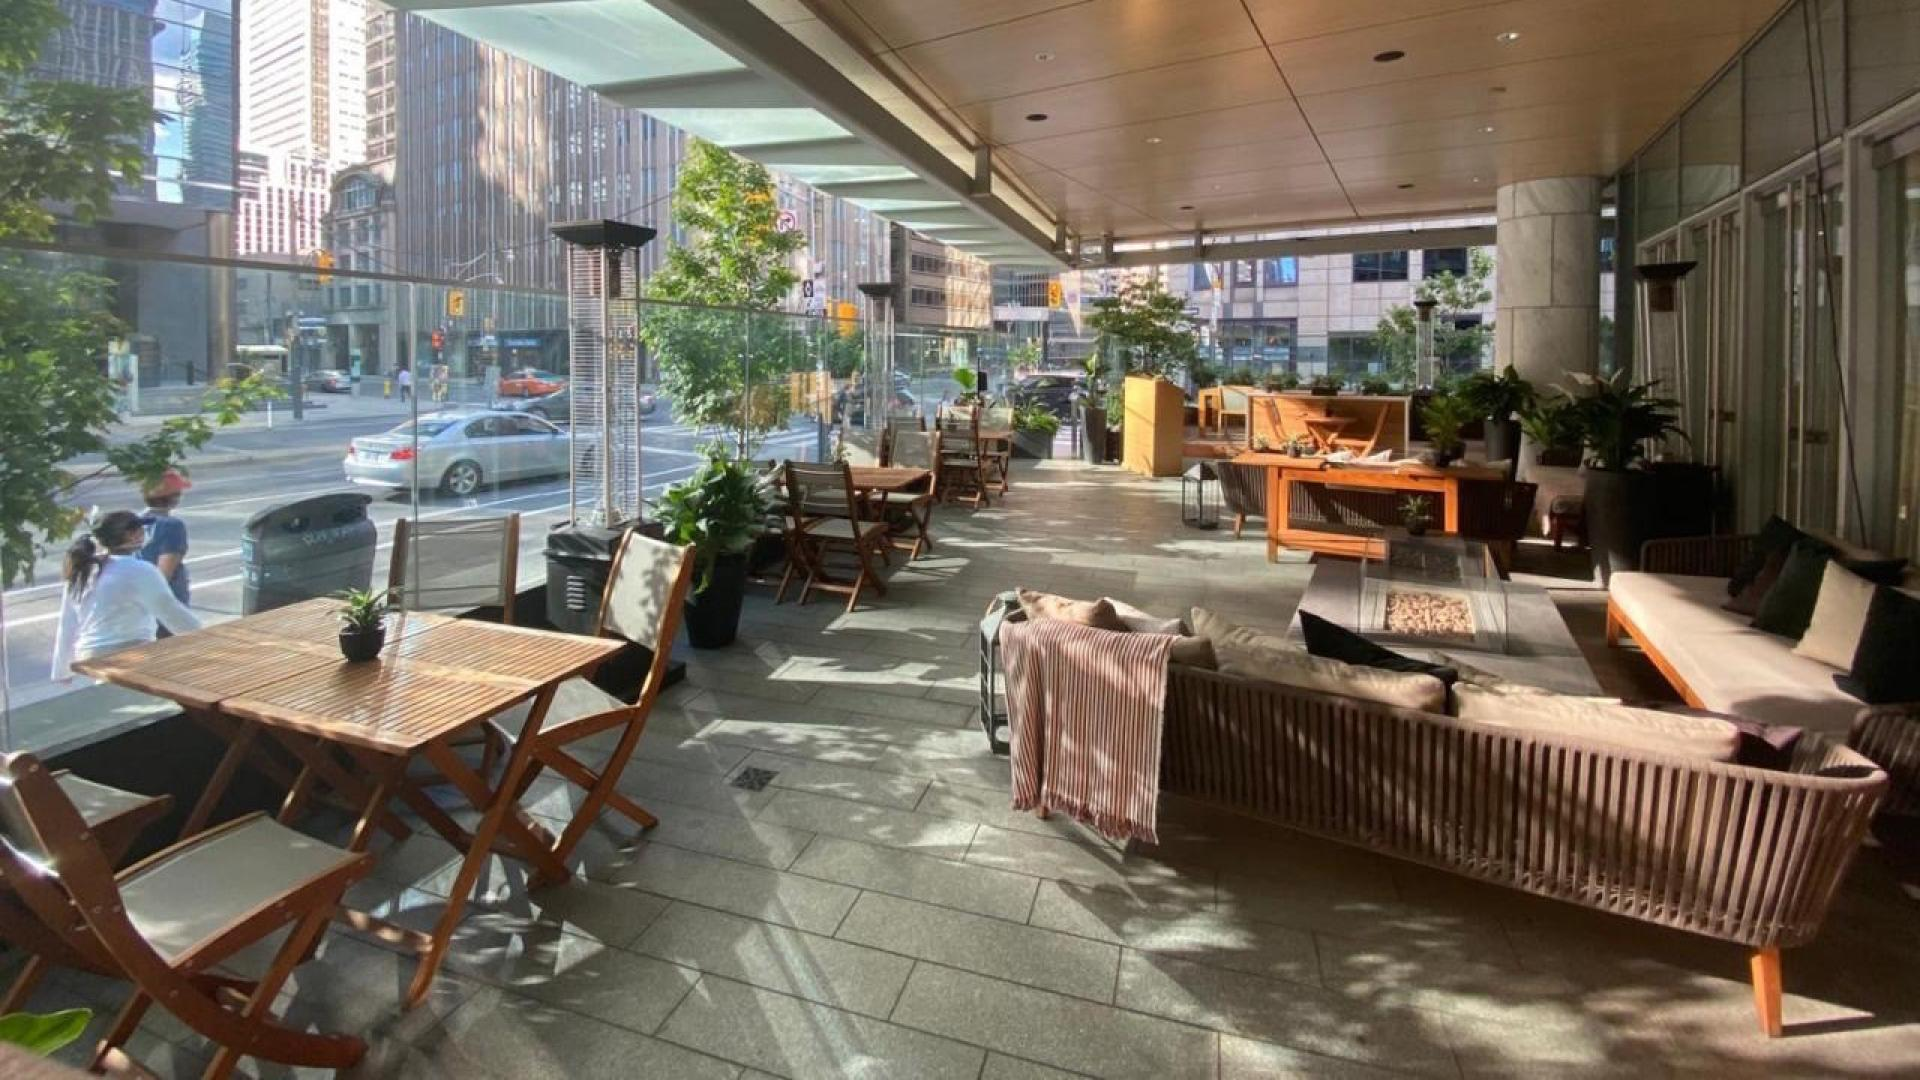 The best patios in Toronto | The Shangri-La Patio